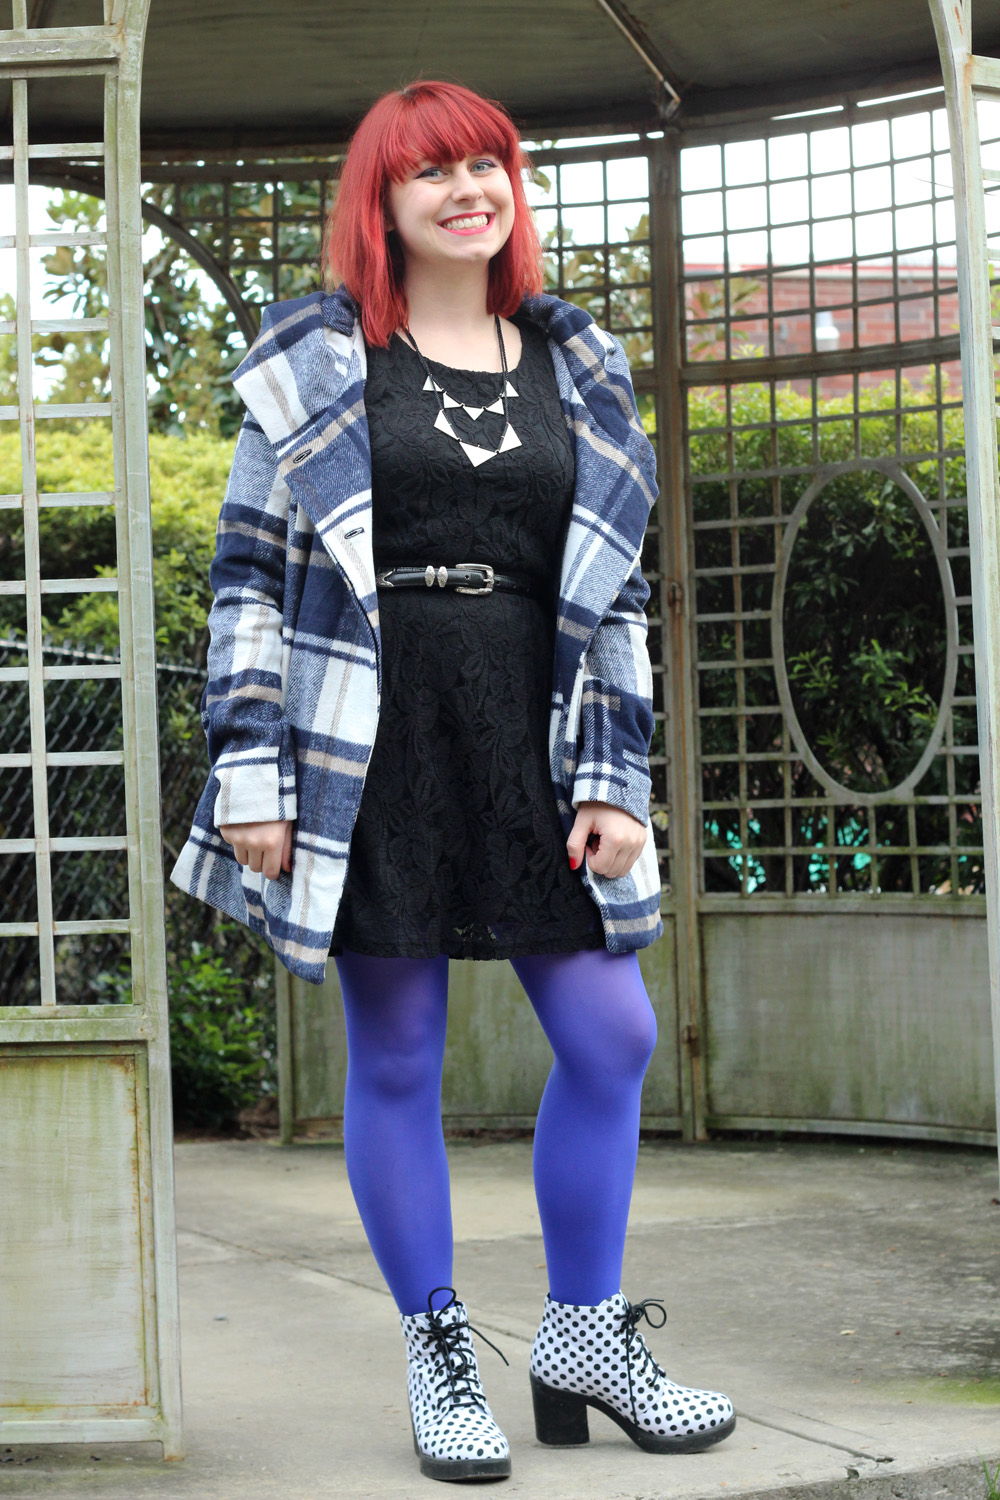 Blue and White Plaid Coat, Black Lace Dress, Bright Blue Tights, and White Polka Dot Chunky Boots